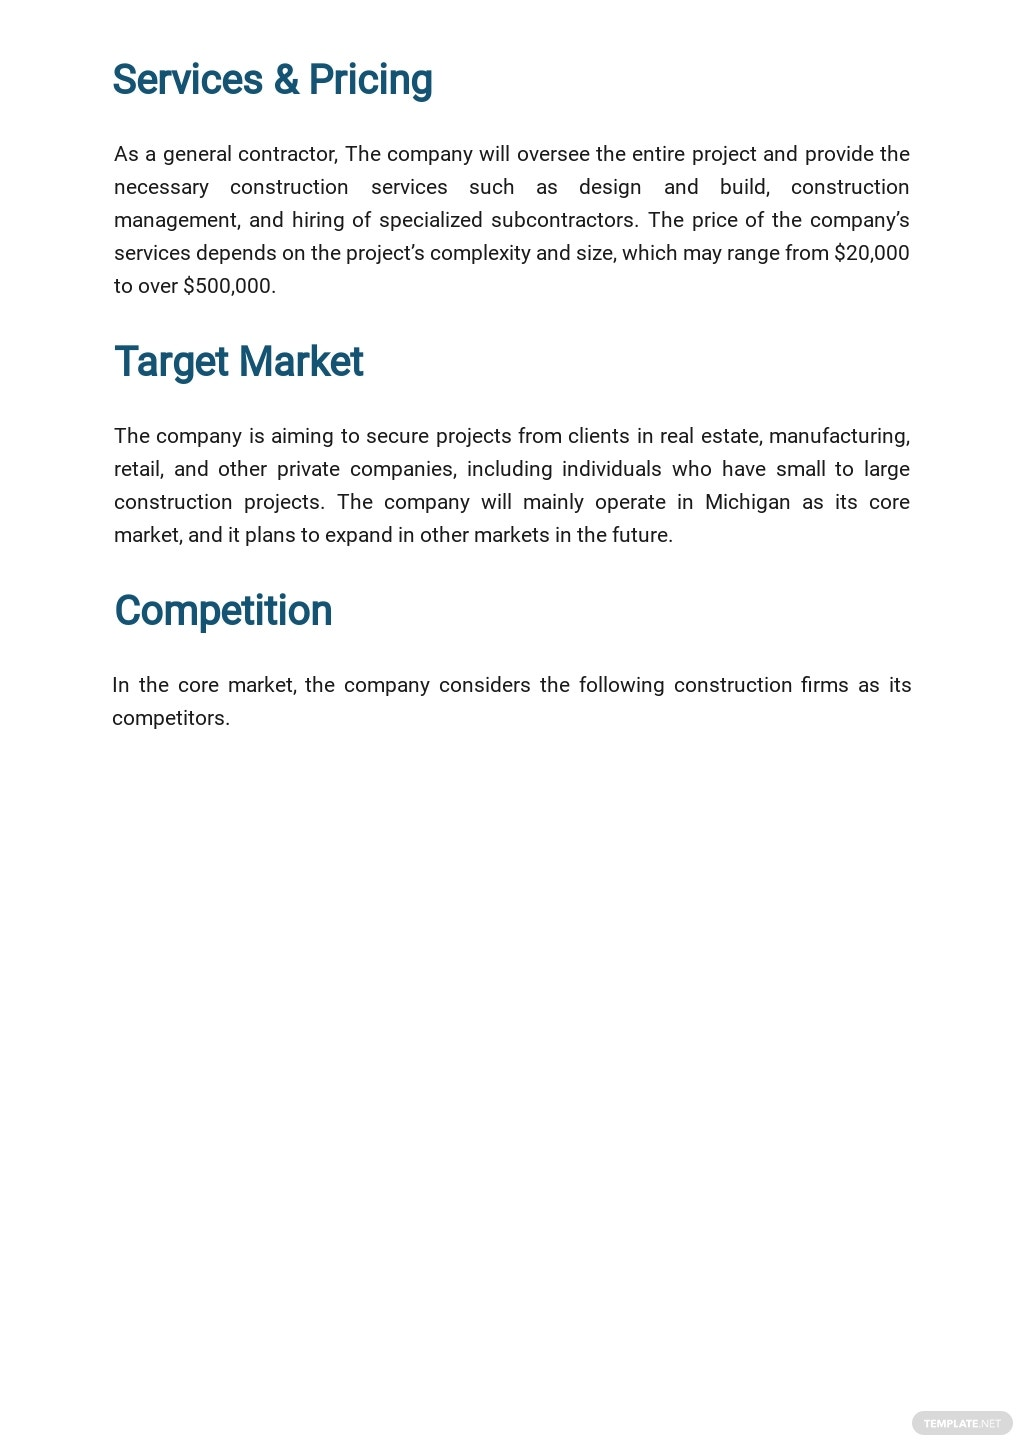 Free General Contracting Company Business Plan Template 2.jpe